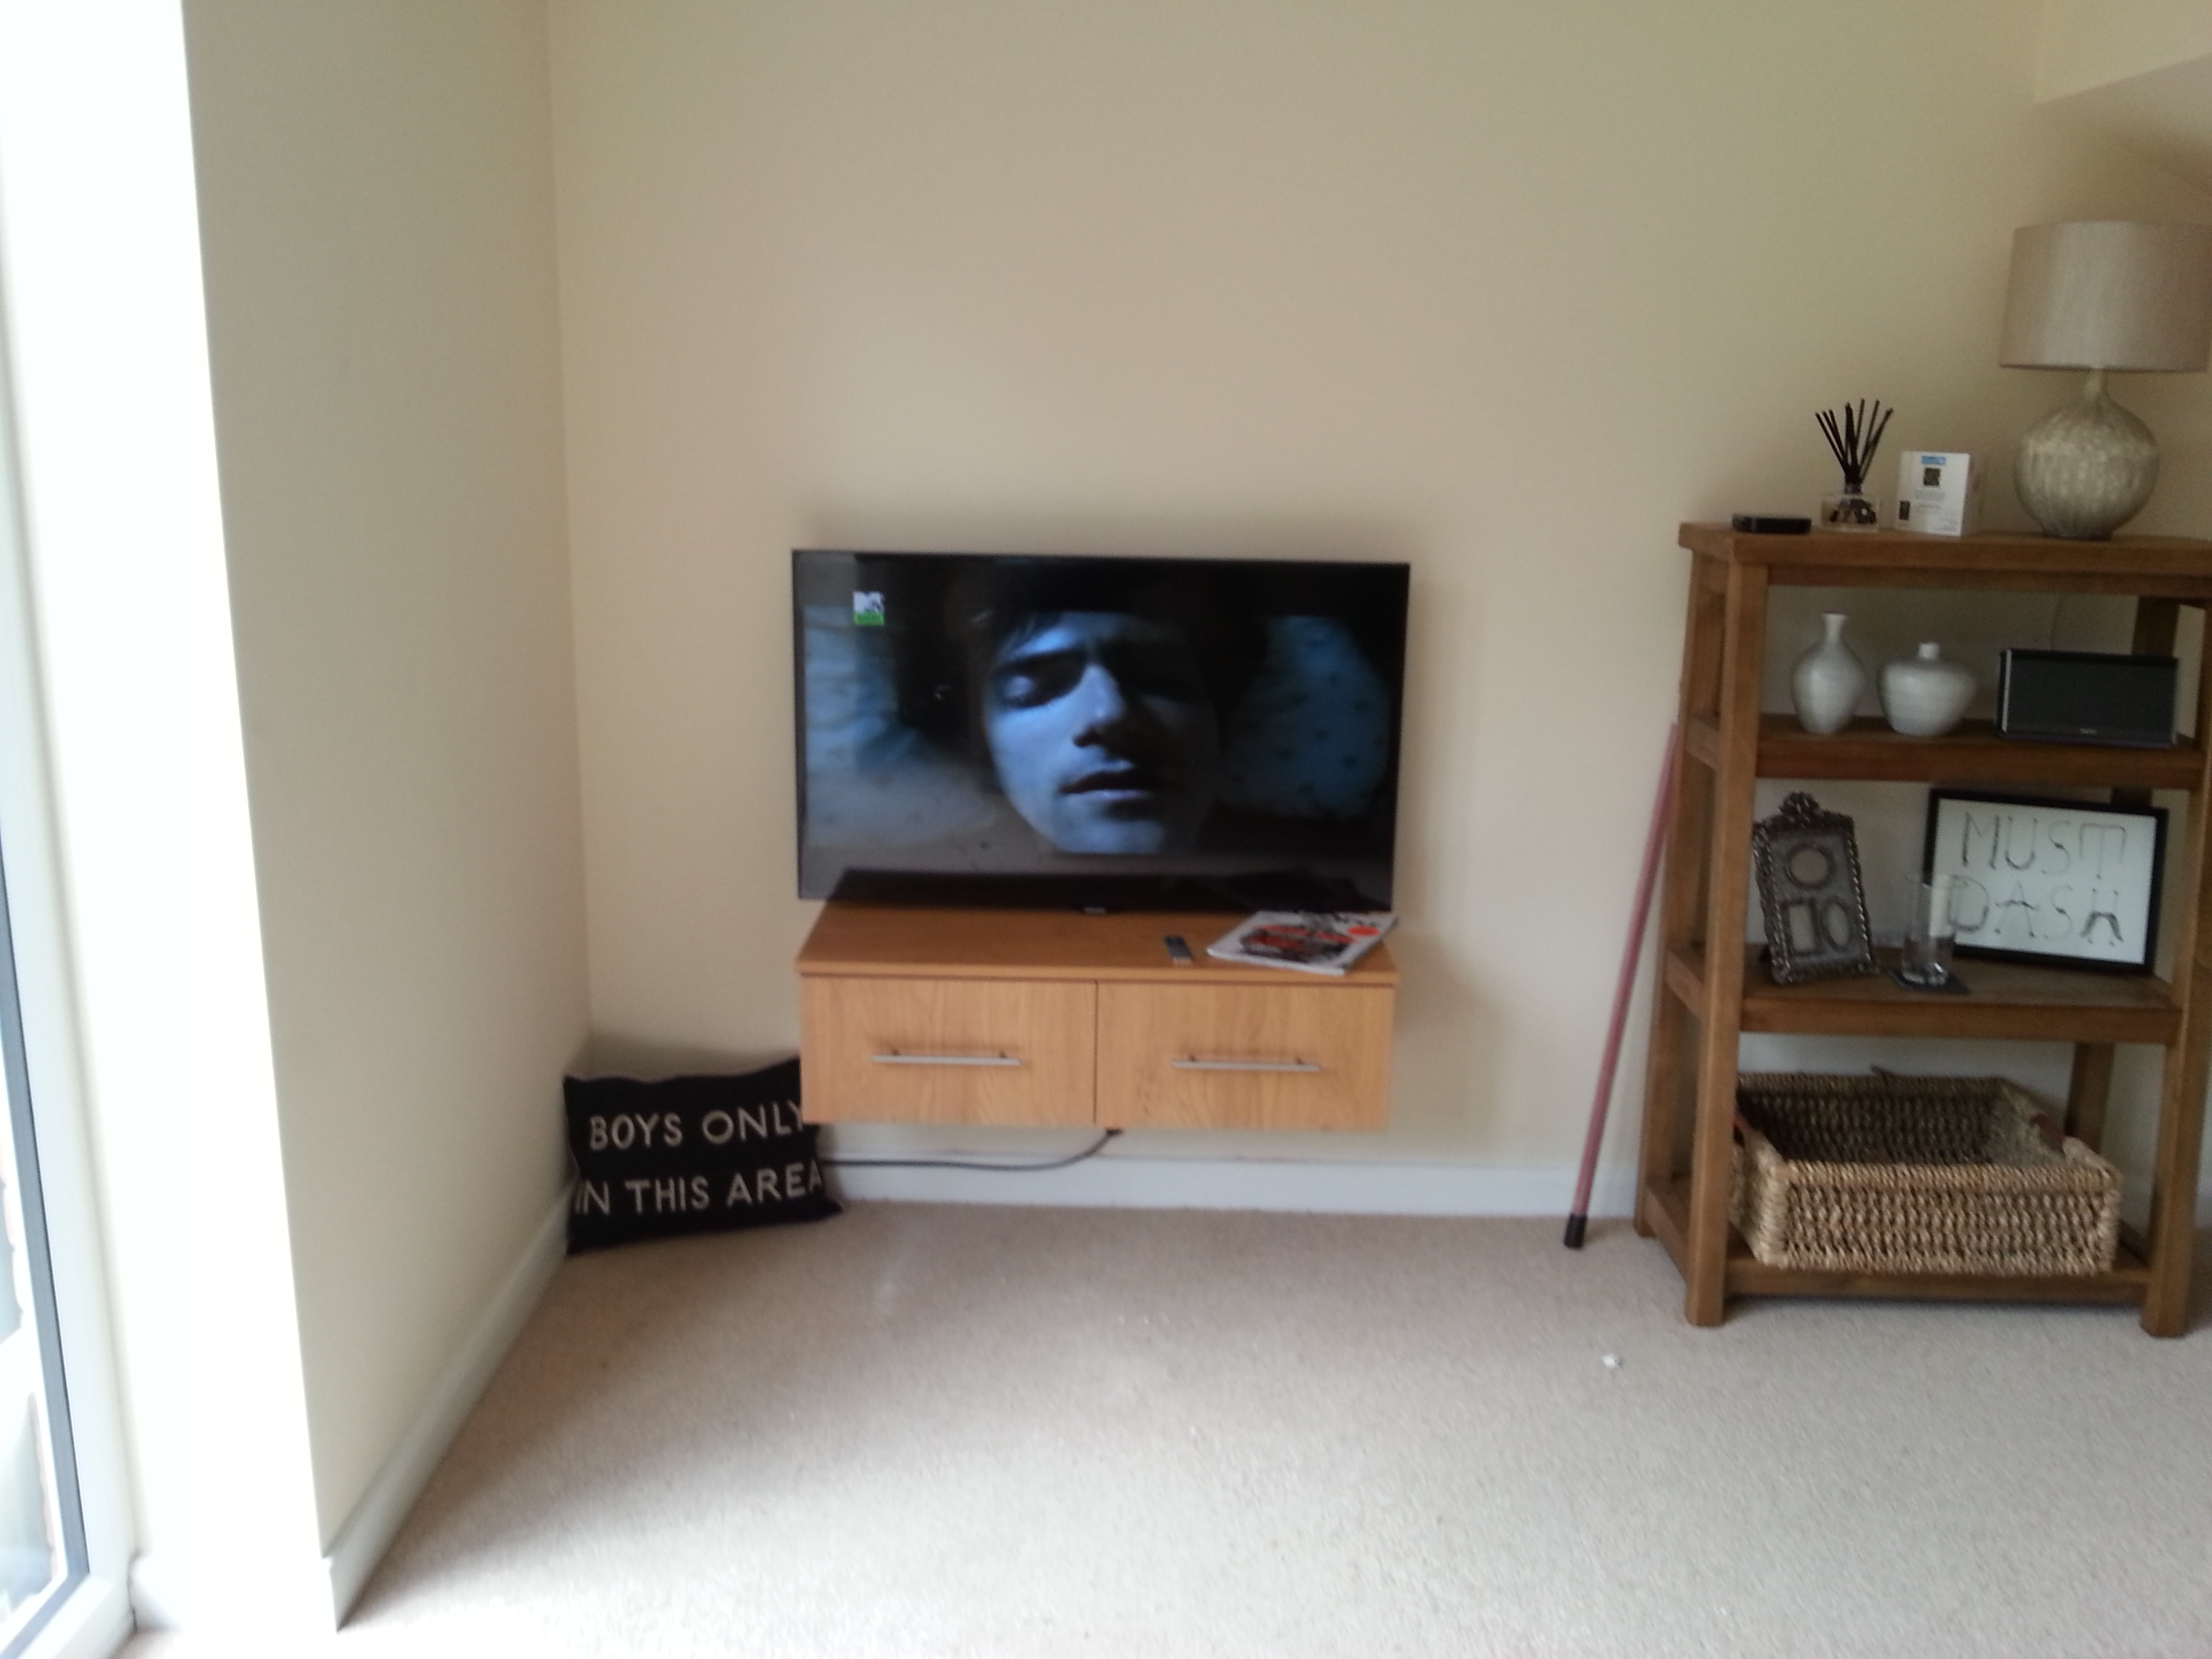 Wall Mounted TV - Starting To Look Good